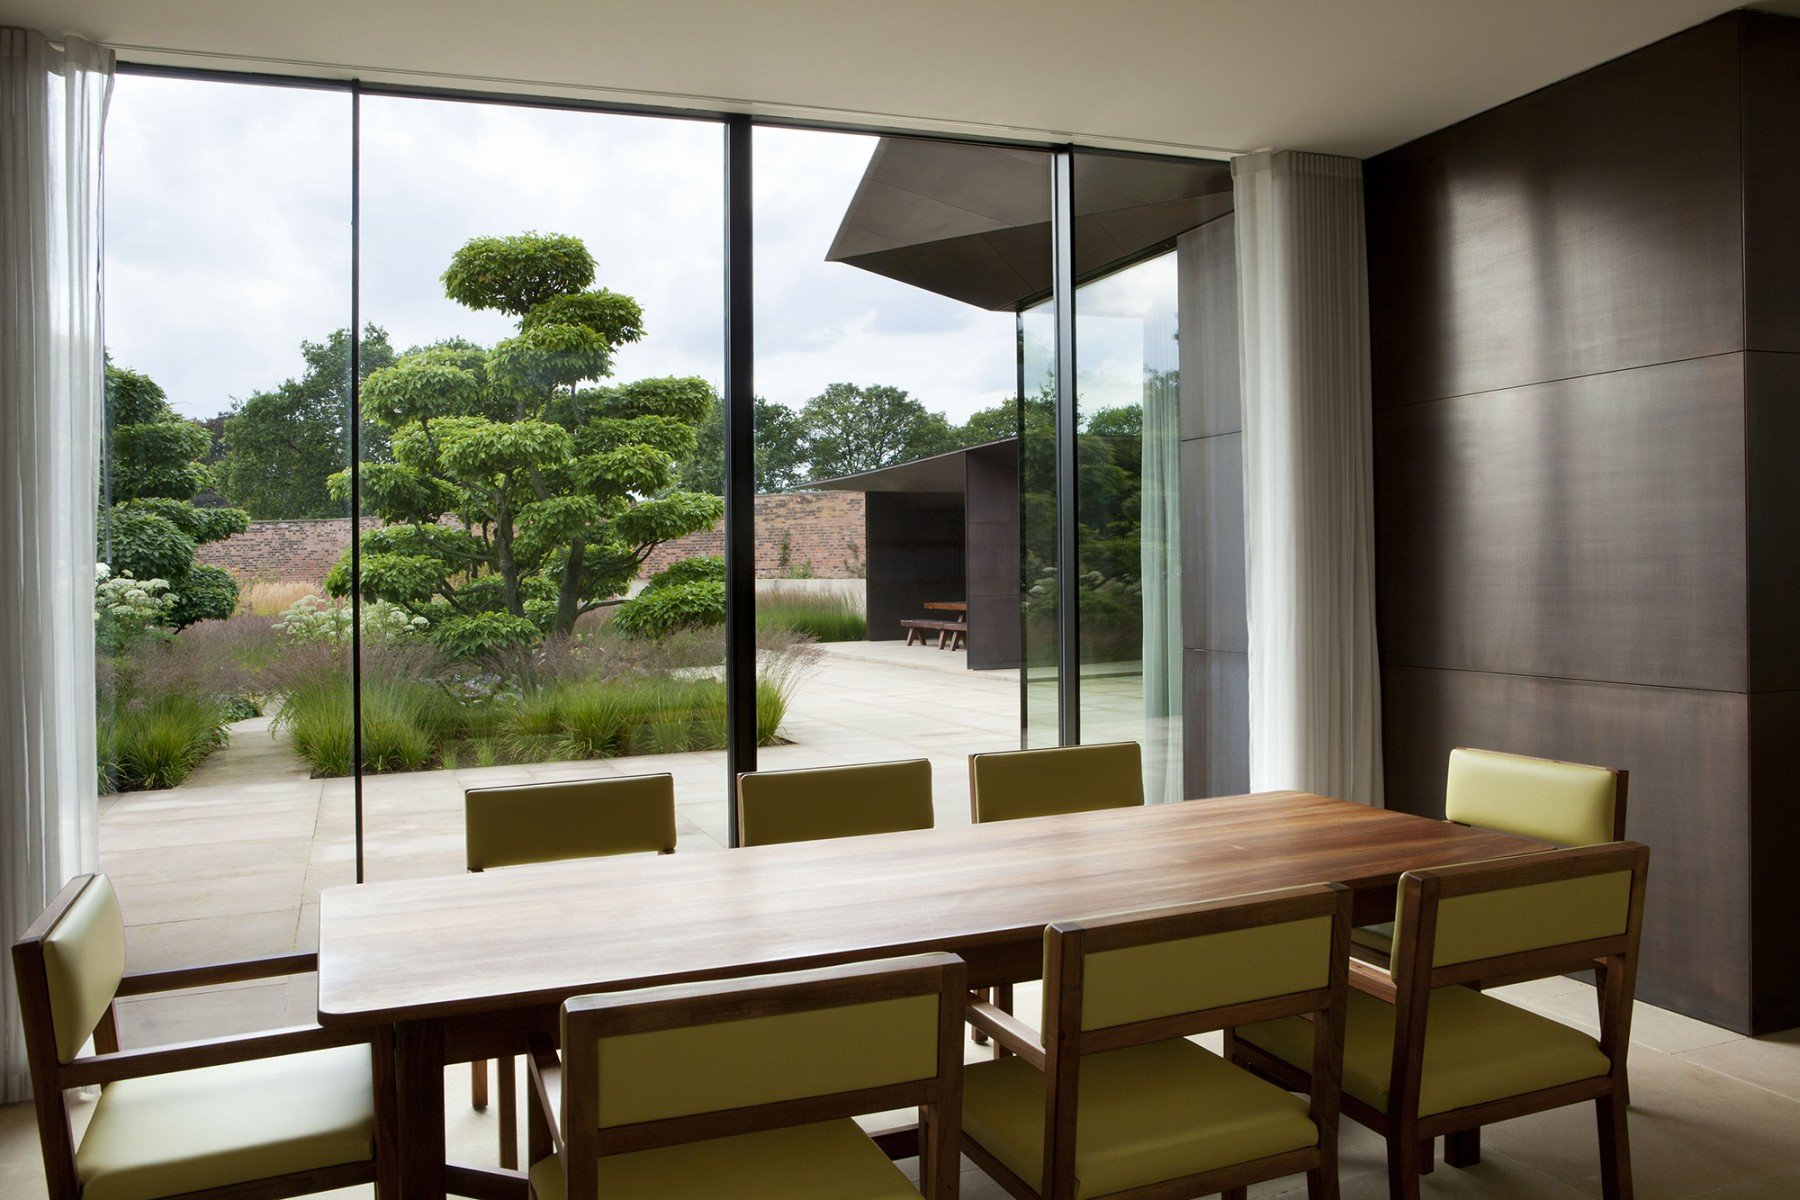 Garden-Grange-Pavilion-landscape-cheshire-cogshall-bronze-copper-room-gate-Tom-Stuart-smith-Jamie-Fobert-Architects-9